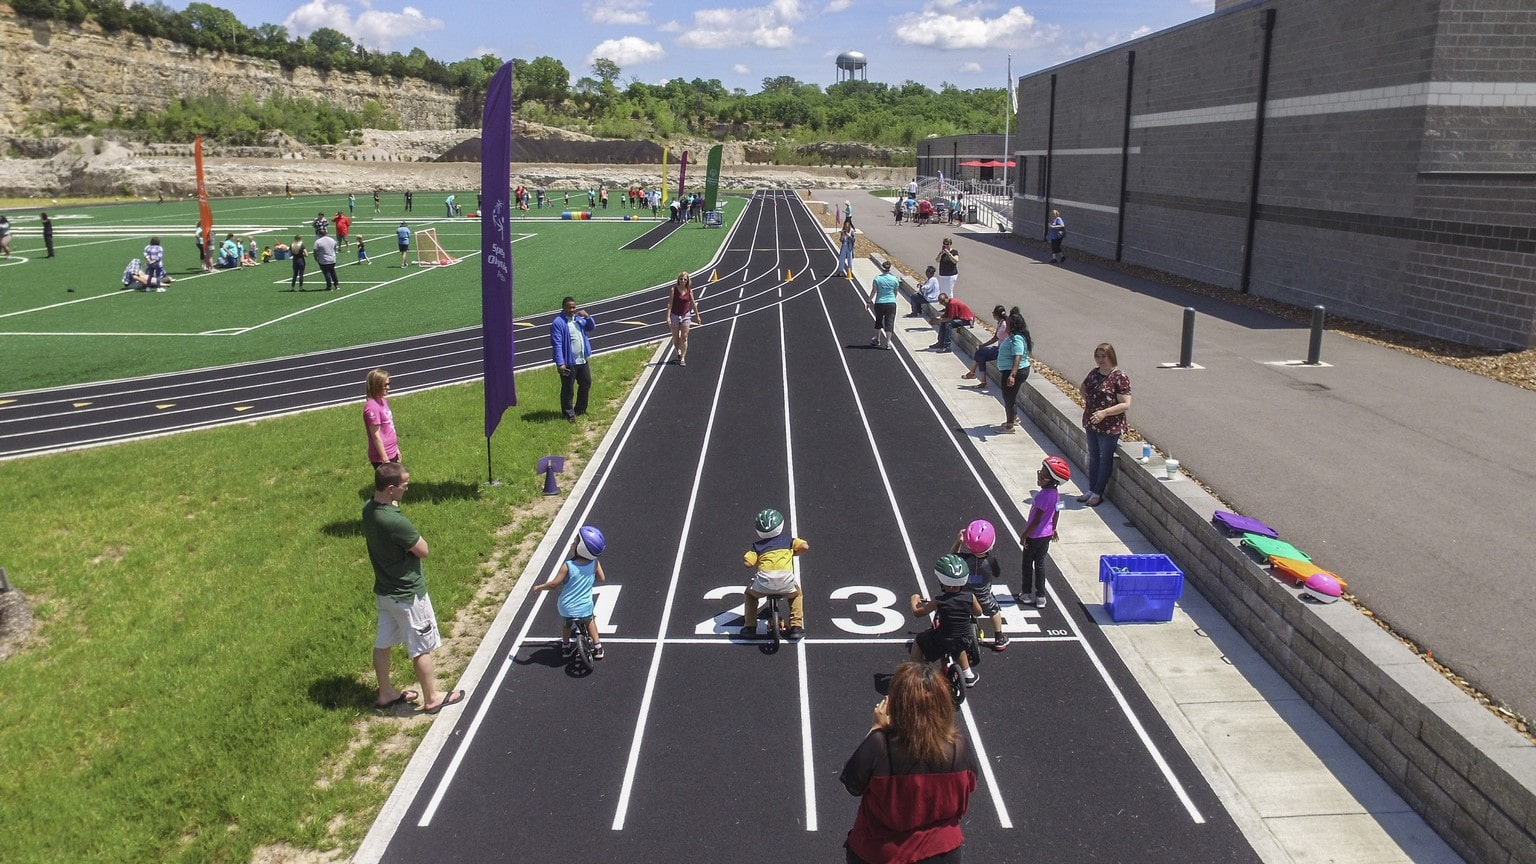 An aerial photo shows a group of Young Athletes riding Strider bicycles down the track